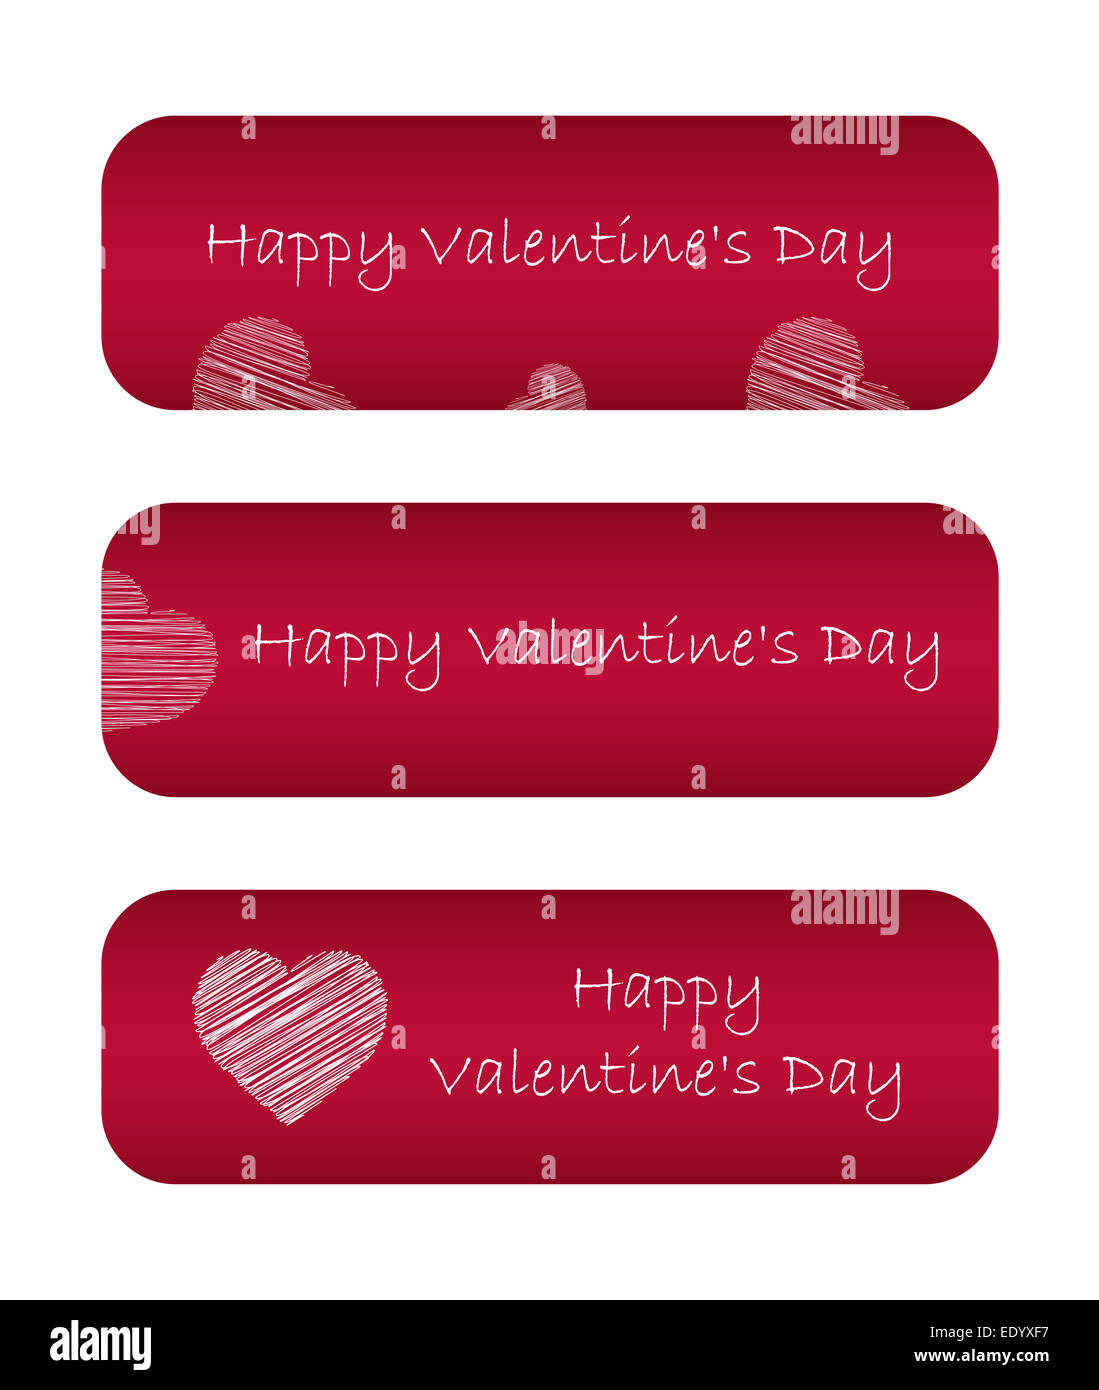 Valentine day banners - Stock Image